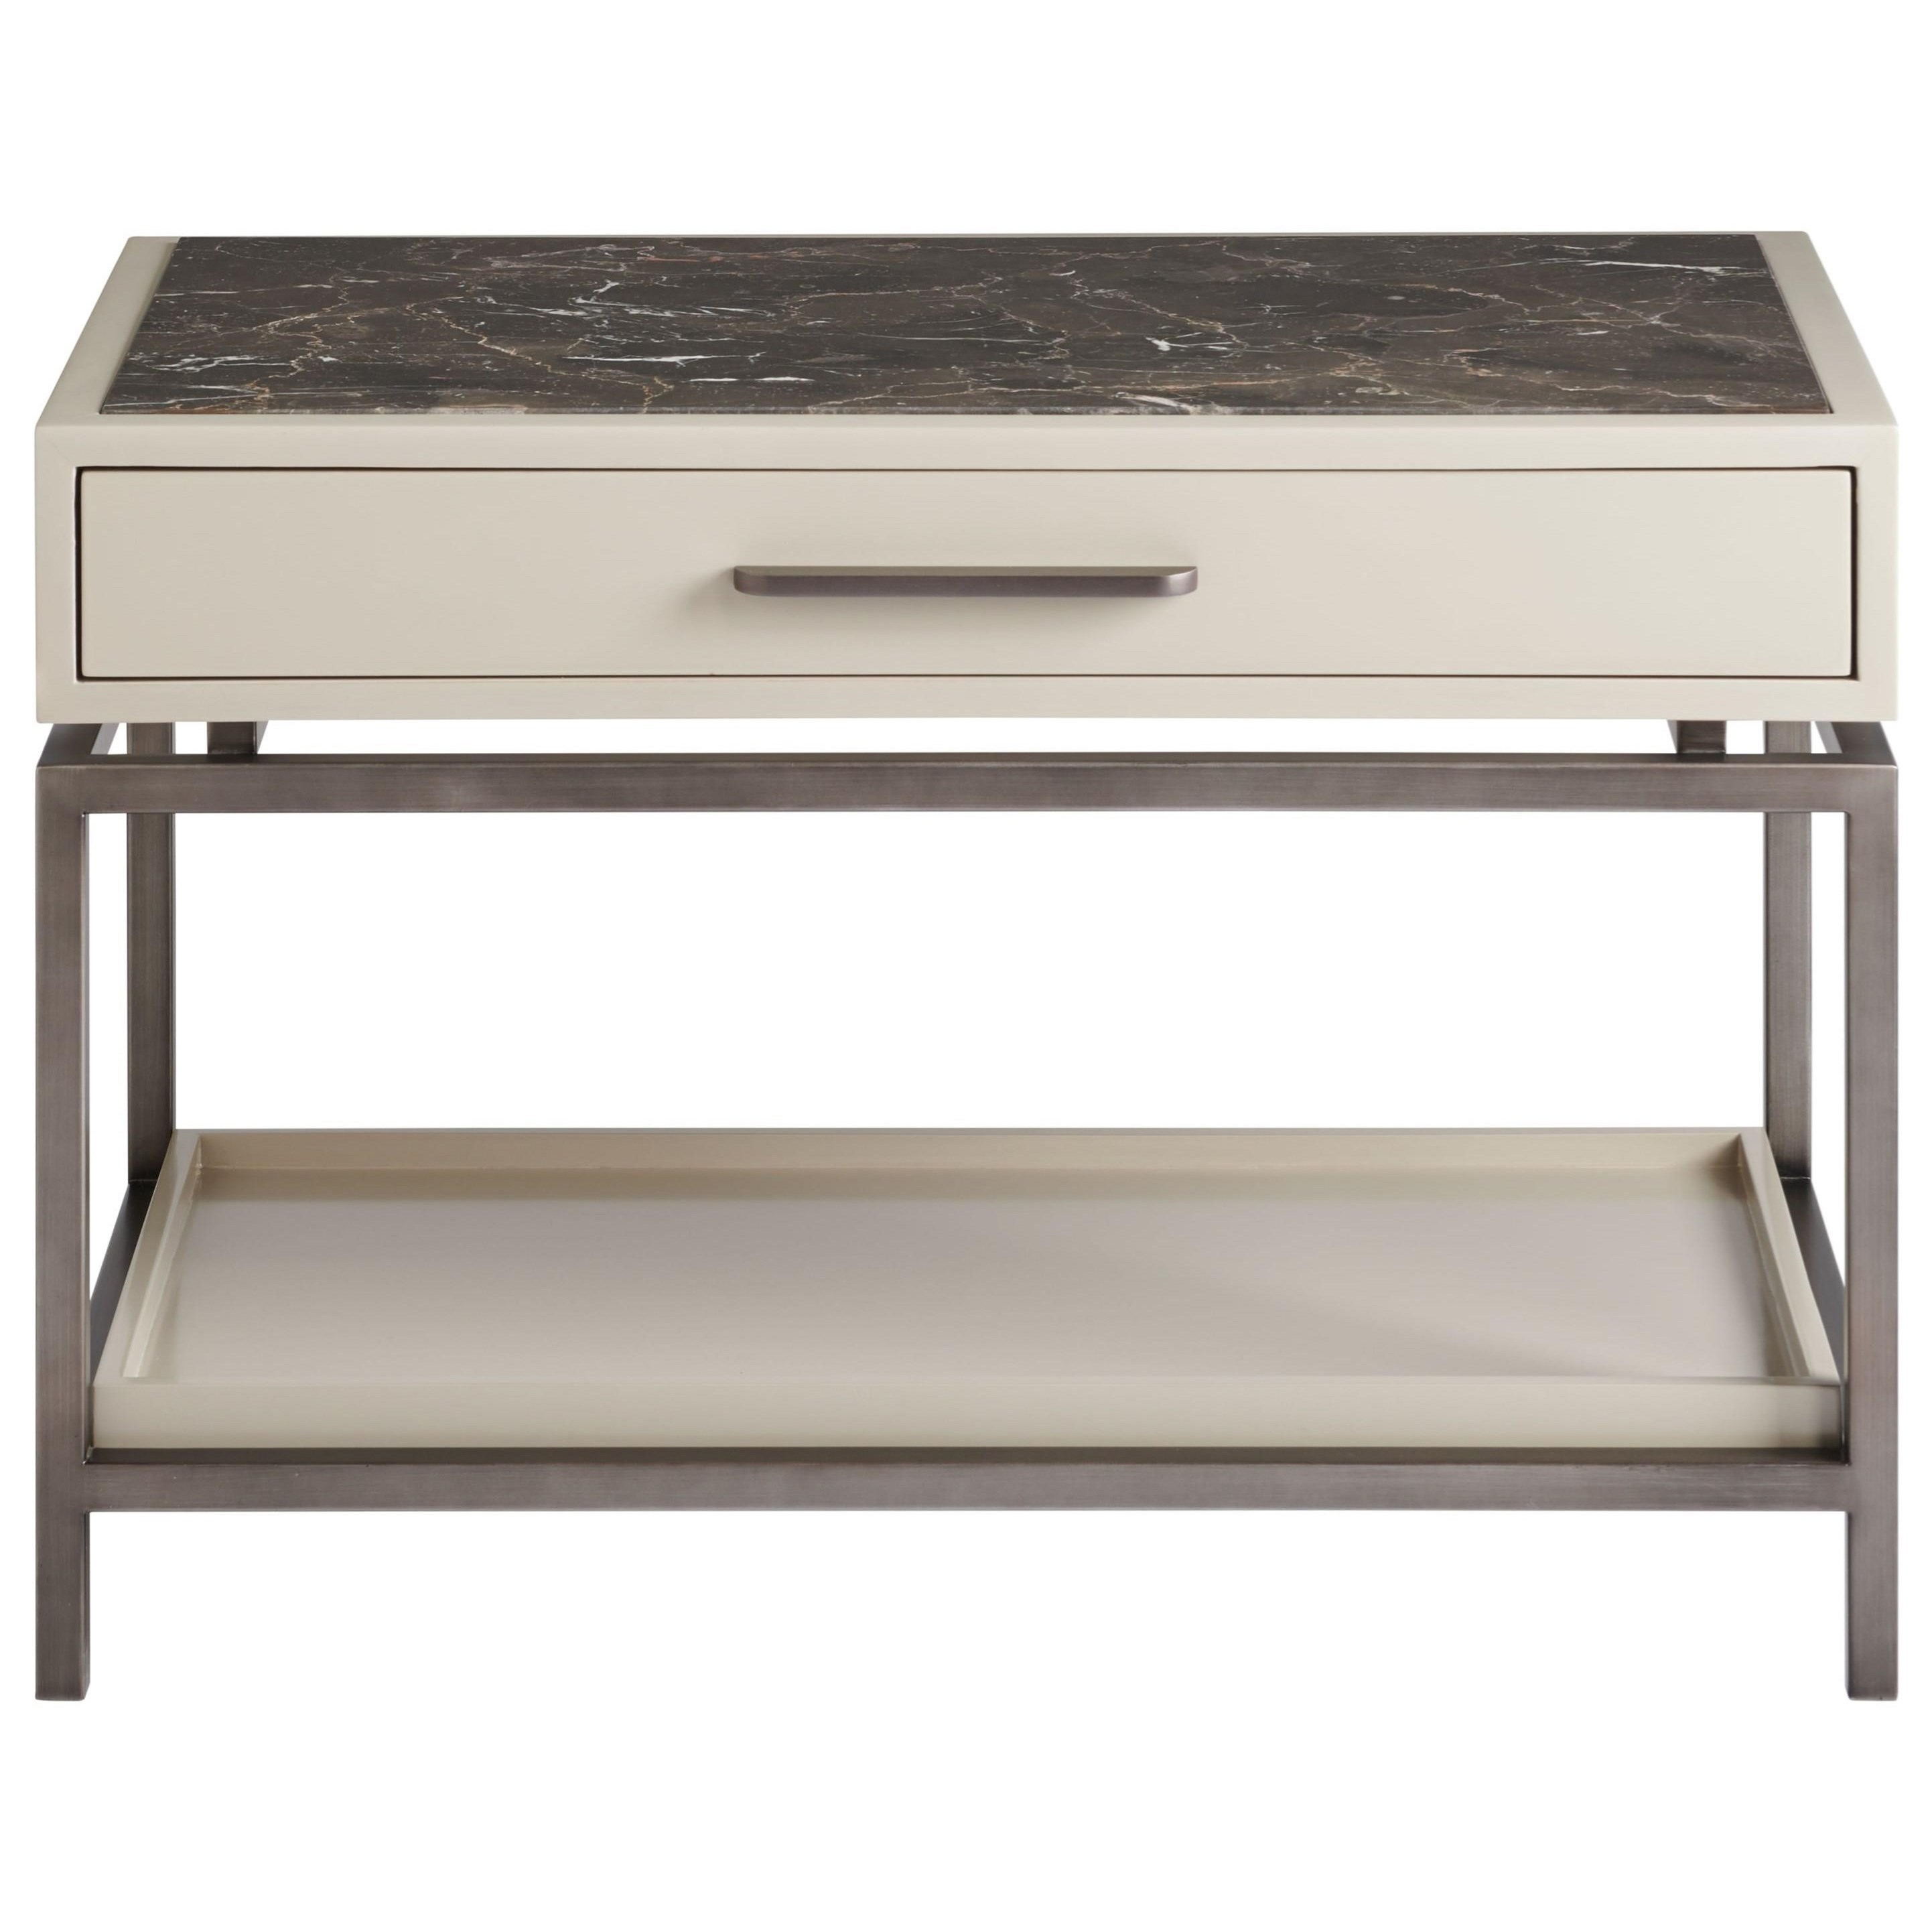 Nina Magon 941 Magon Nightstand by Universal at Baer's Furniture